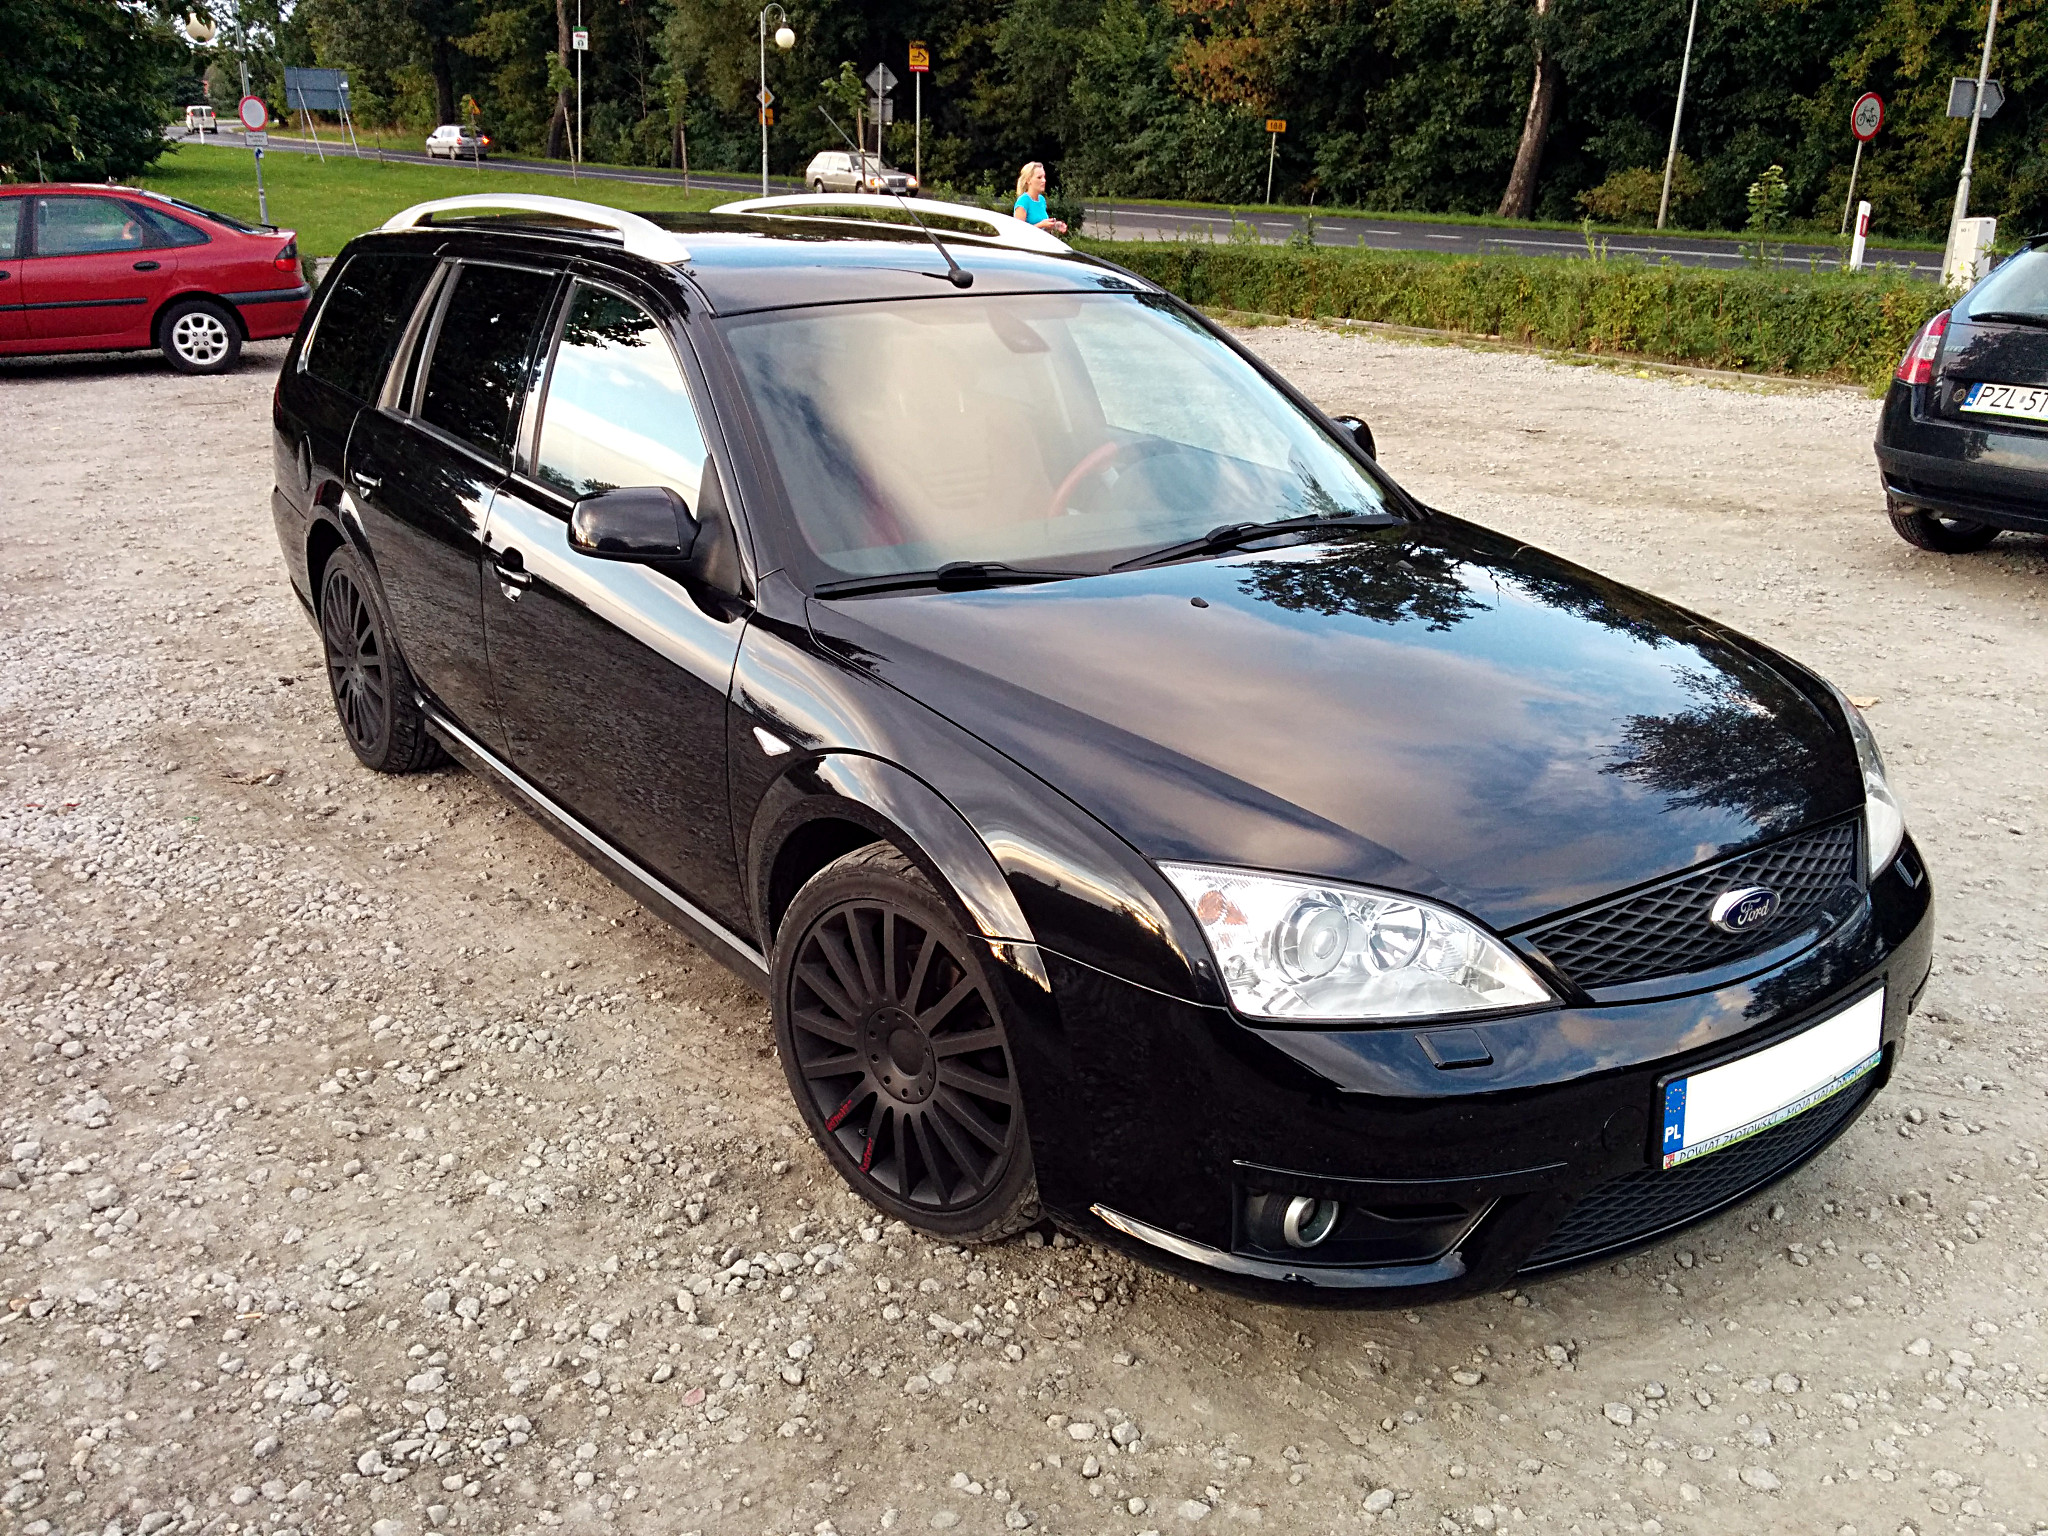 Mondeo Mondeo St220 Bobsona Ford Tuning Forum